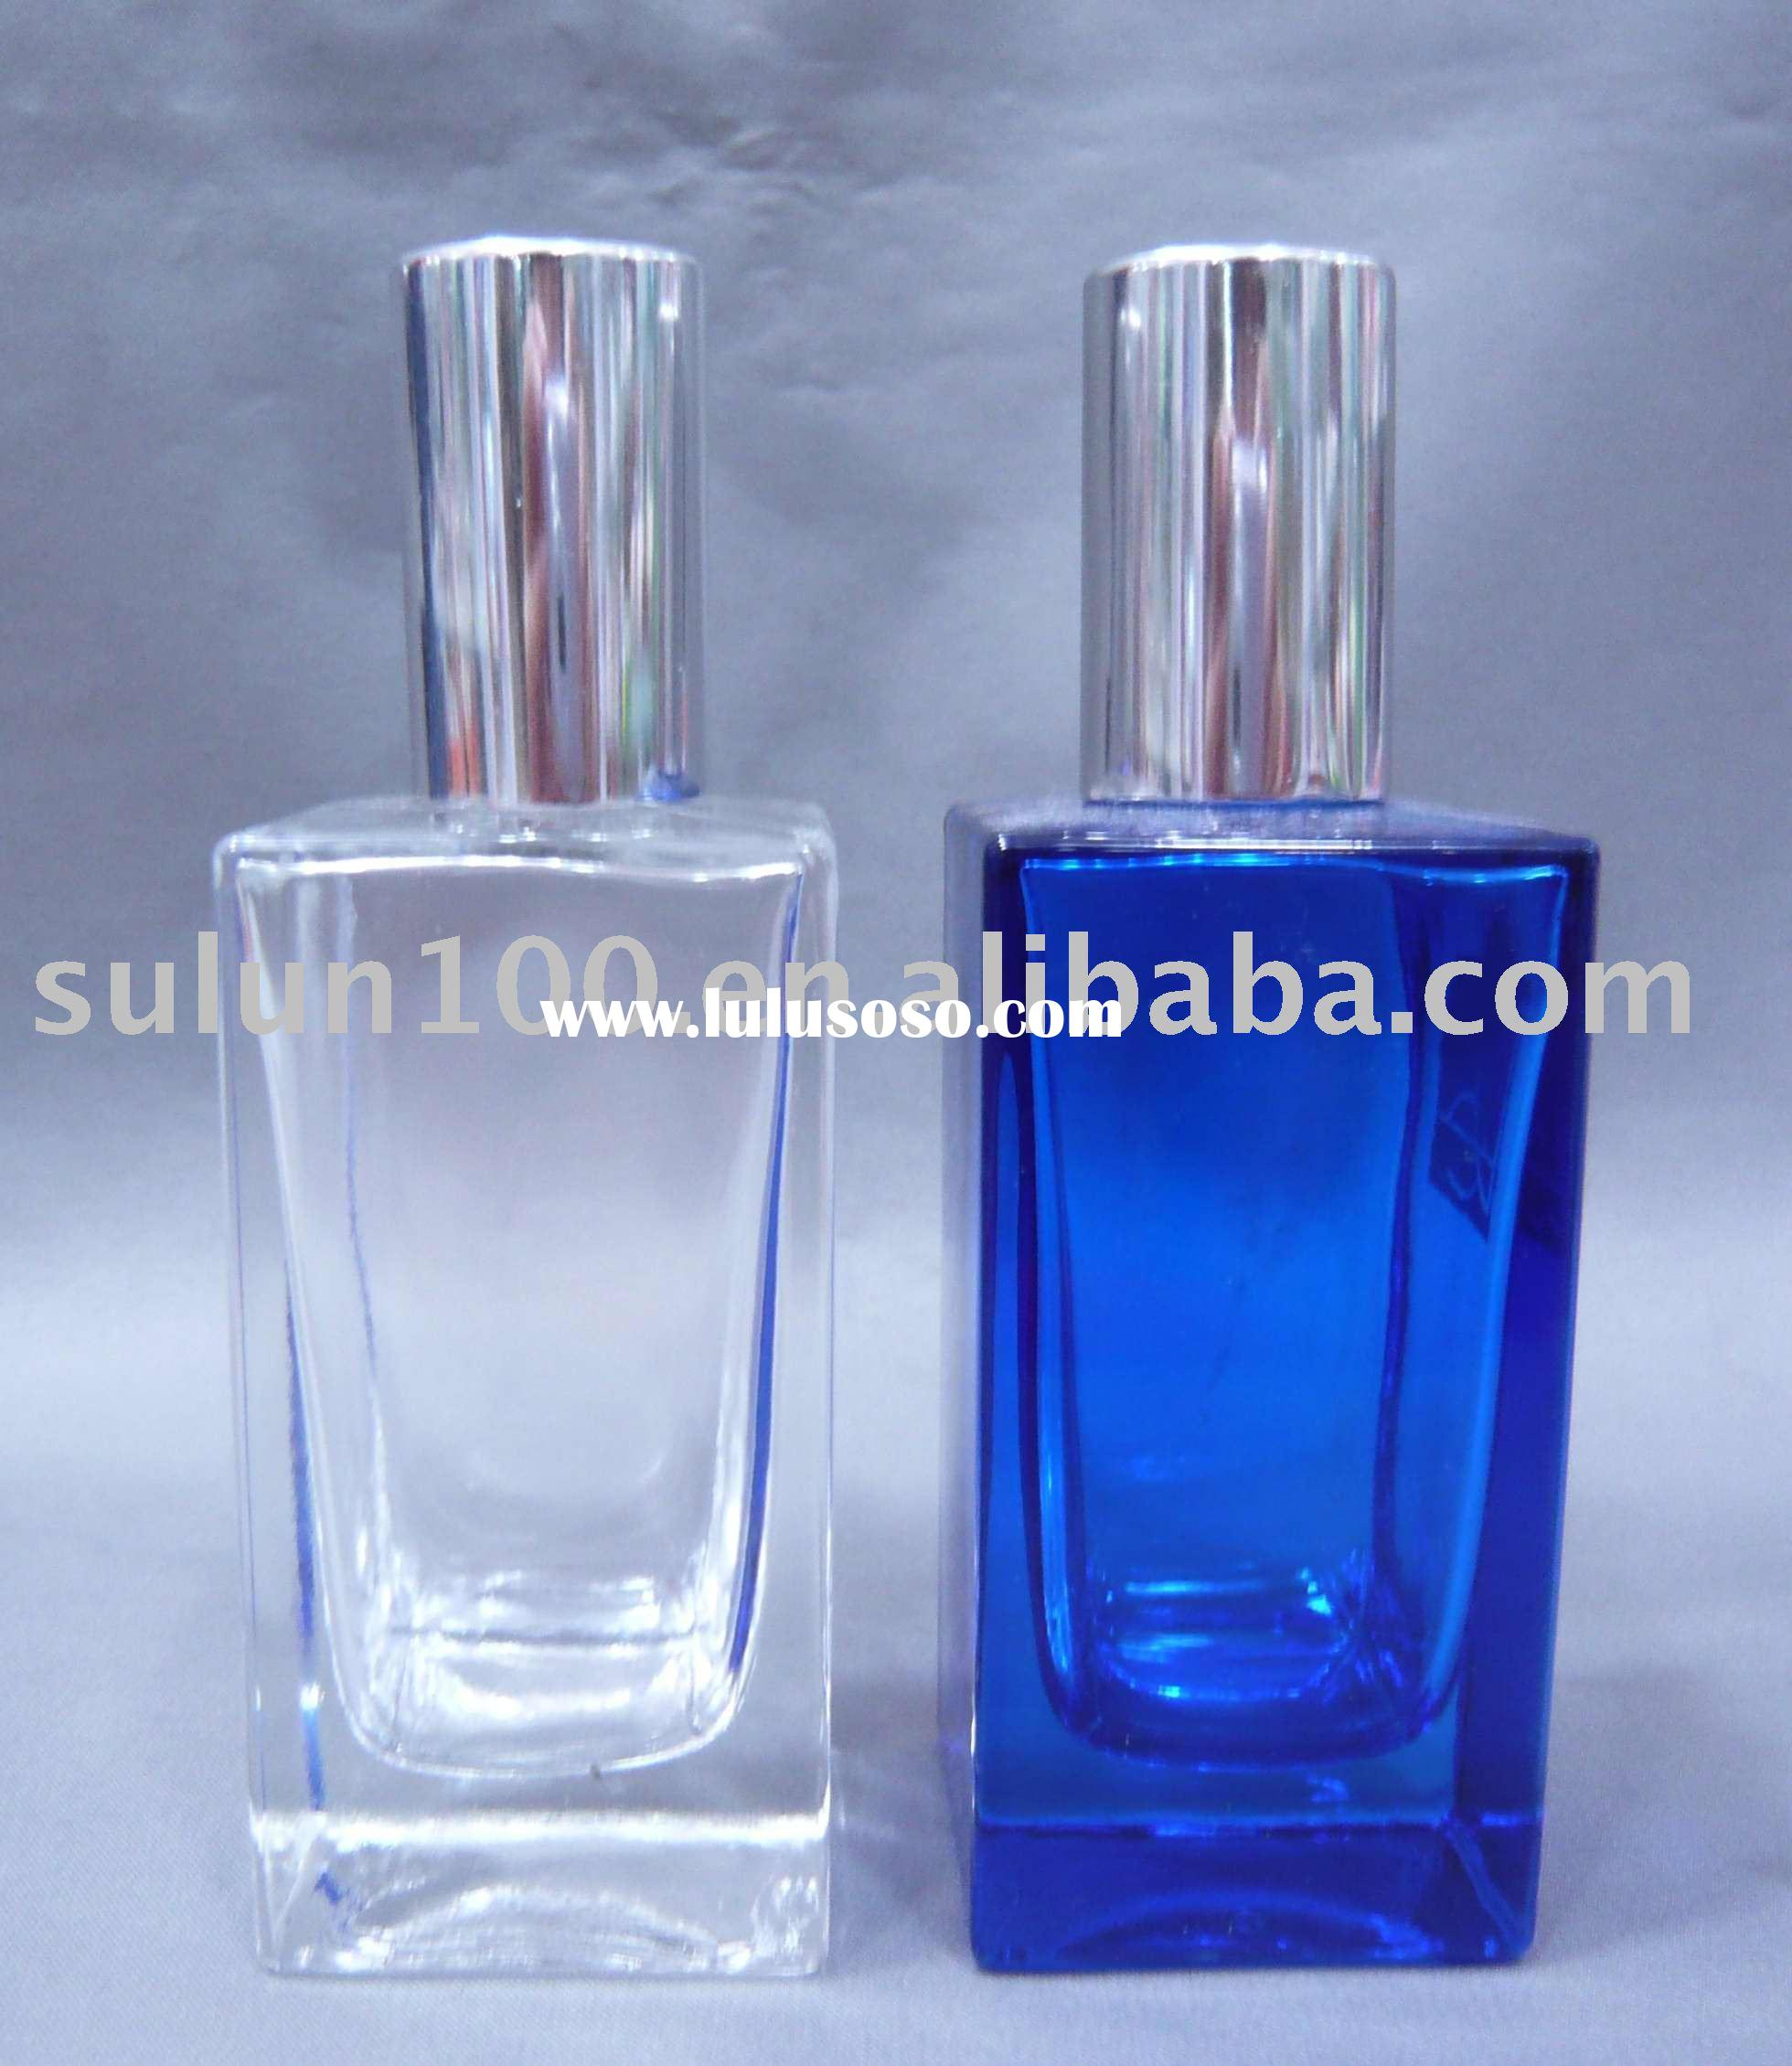 Crystal glass perfume bottle with pump sprayer